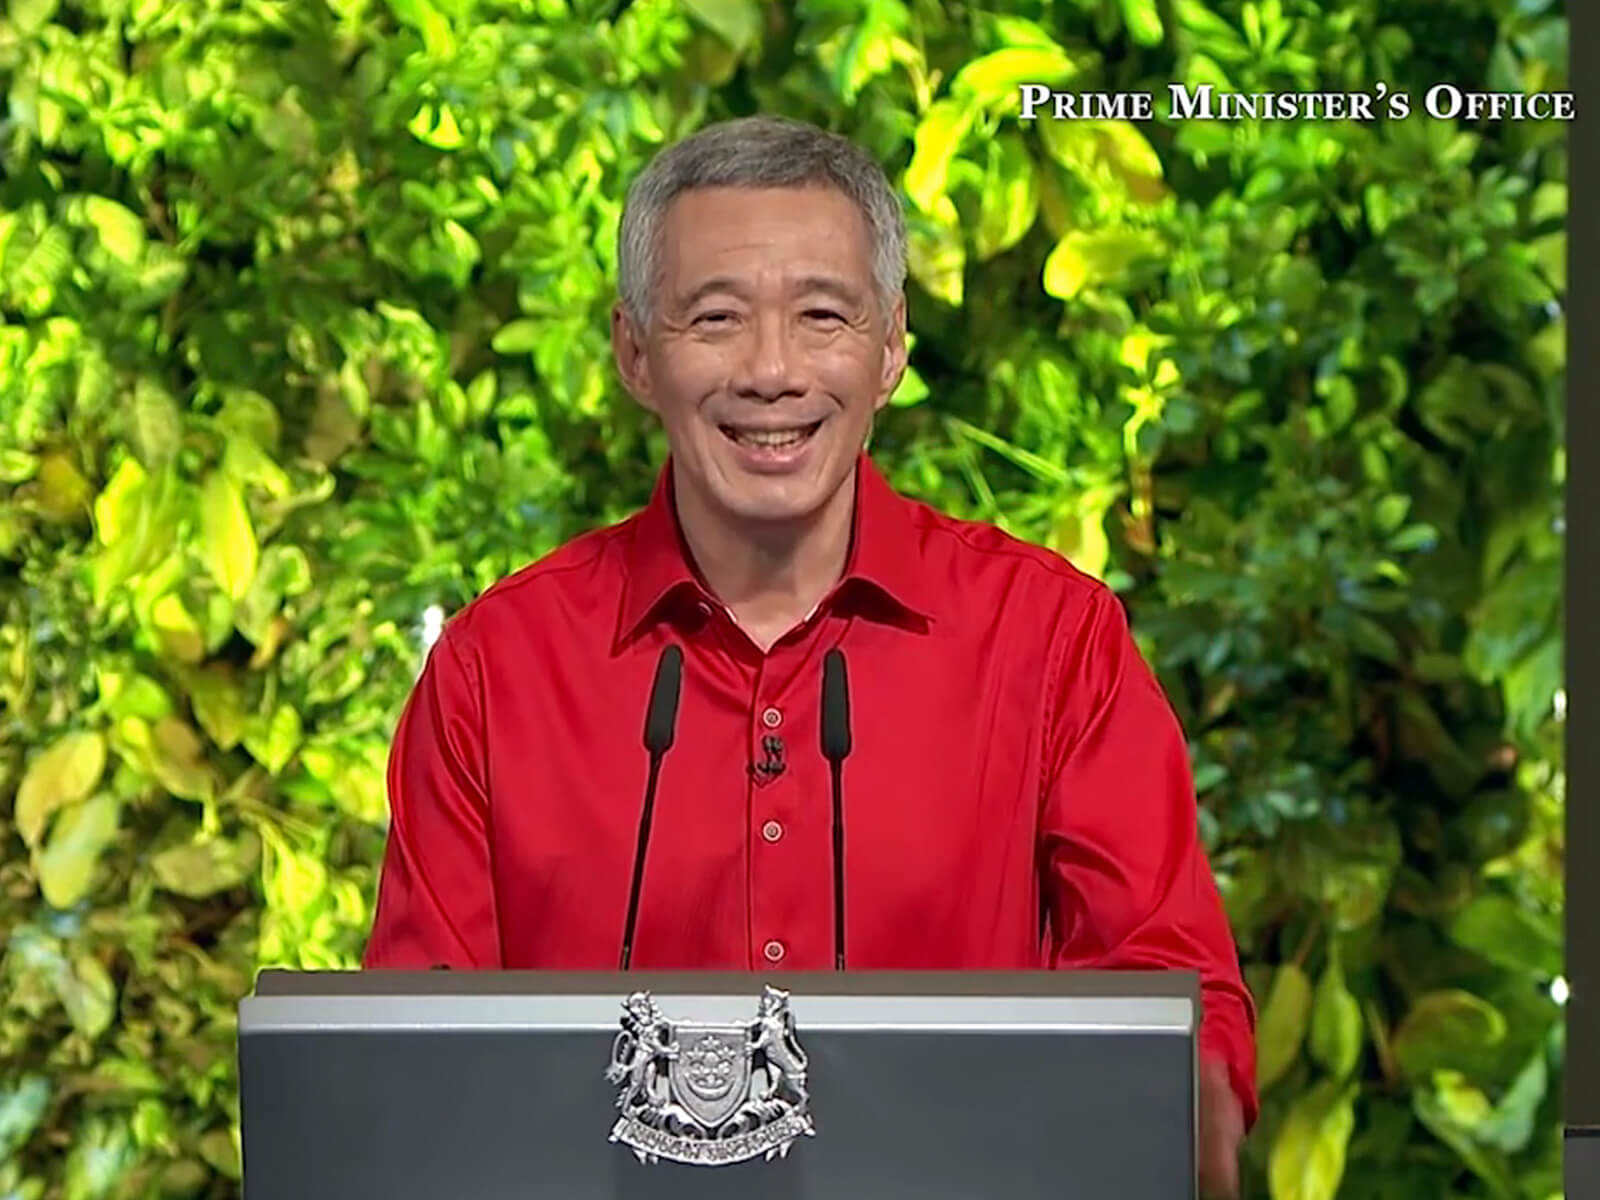 Singapore's Prime Minister, Lee Hsien Loong stands at a lectern with an image of a wall of vines behind him